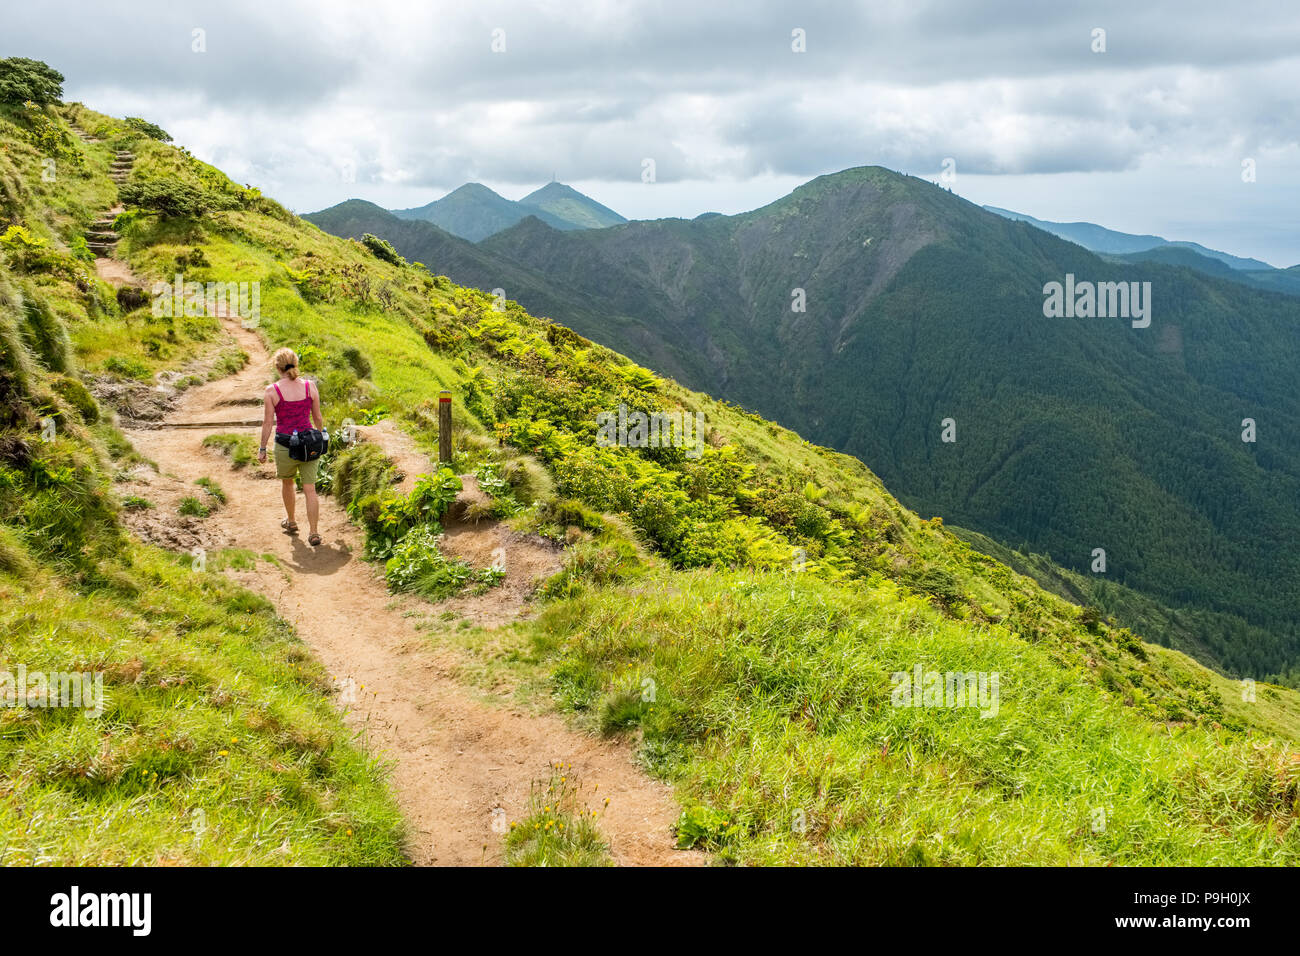 Female walker on The slopes of Pico da Vara, the highest point on Sao Miguel, Azores - Stock Image